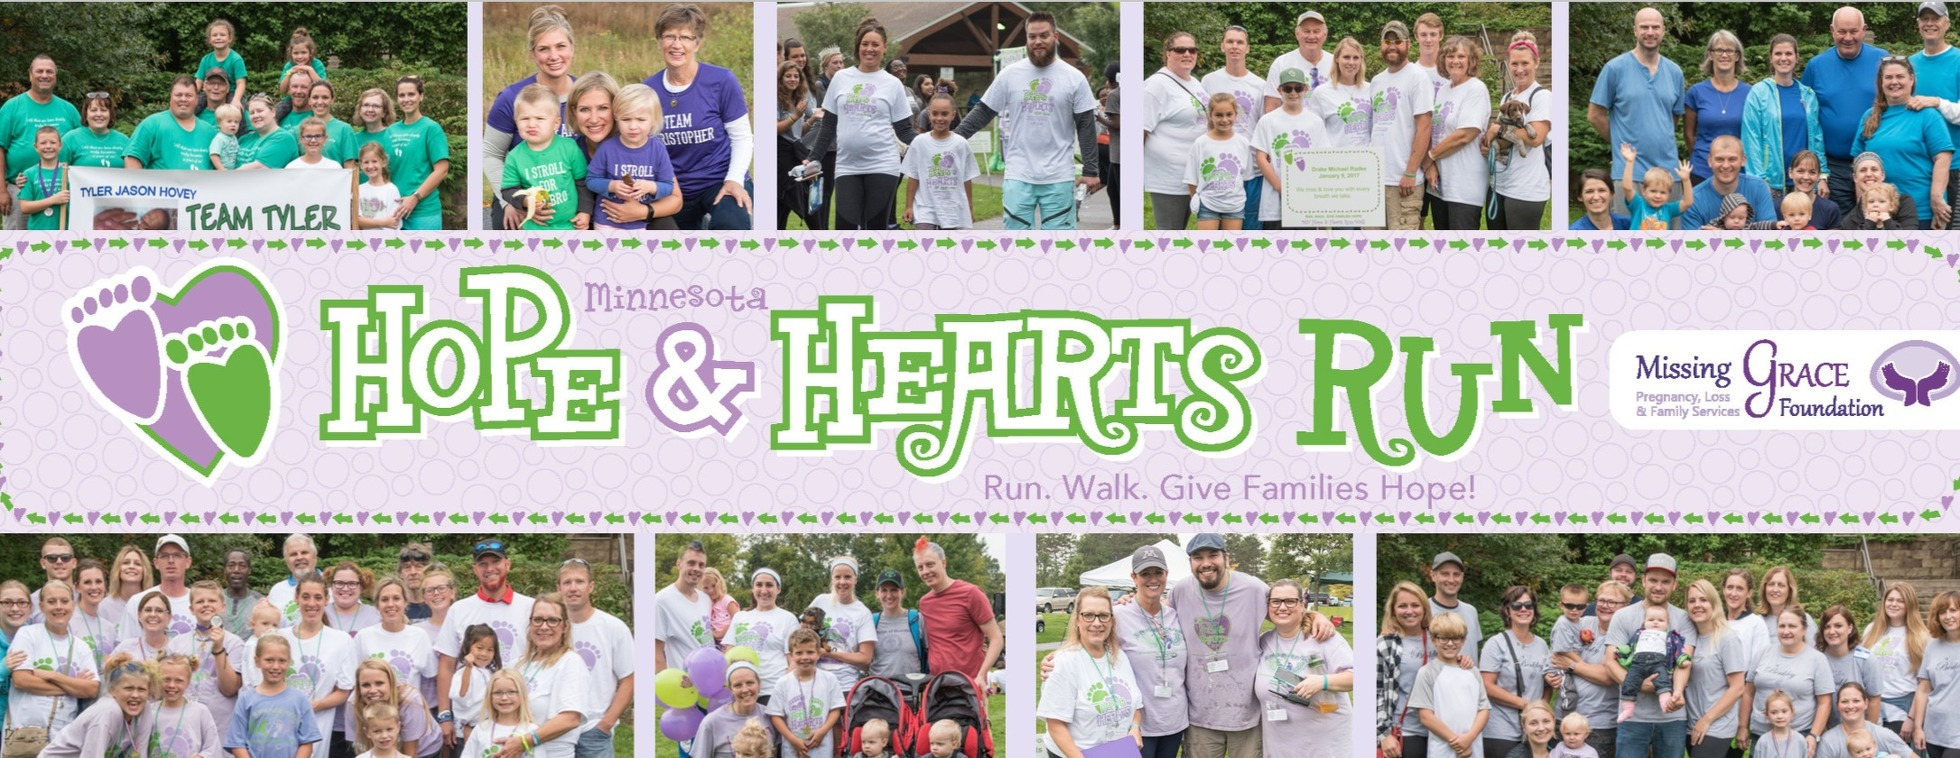 14th Hope & Hearts Run/Walk